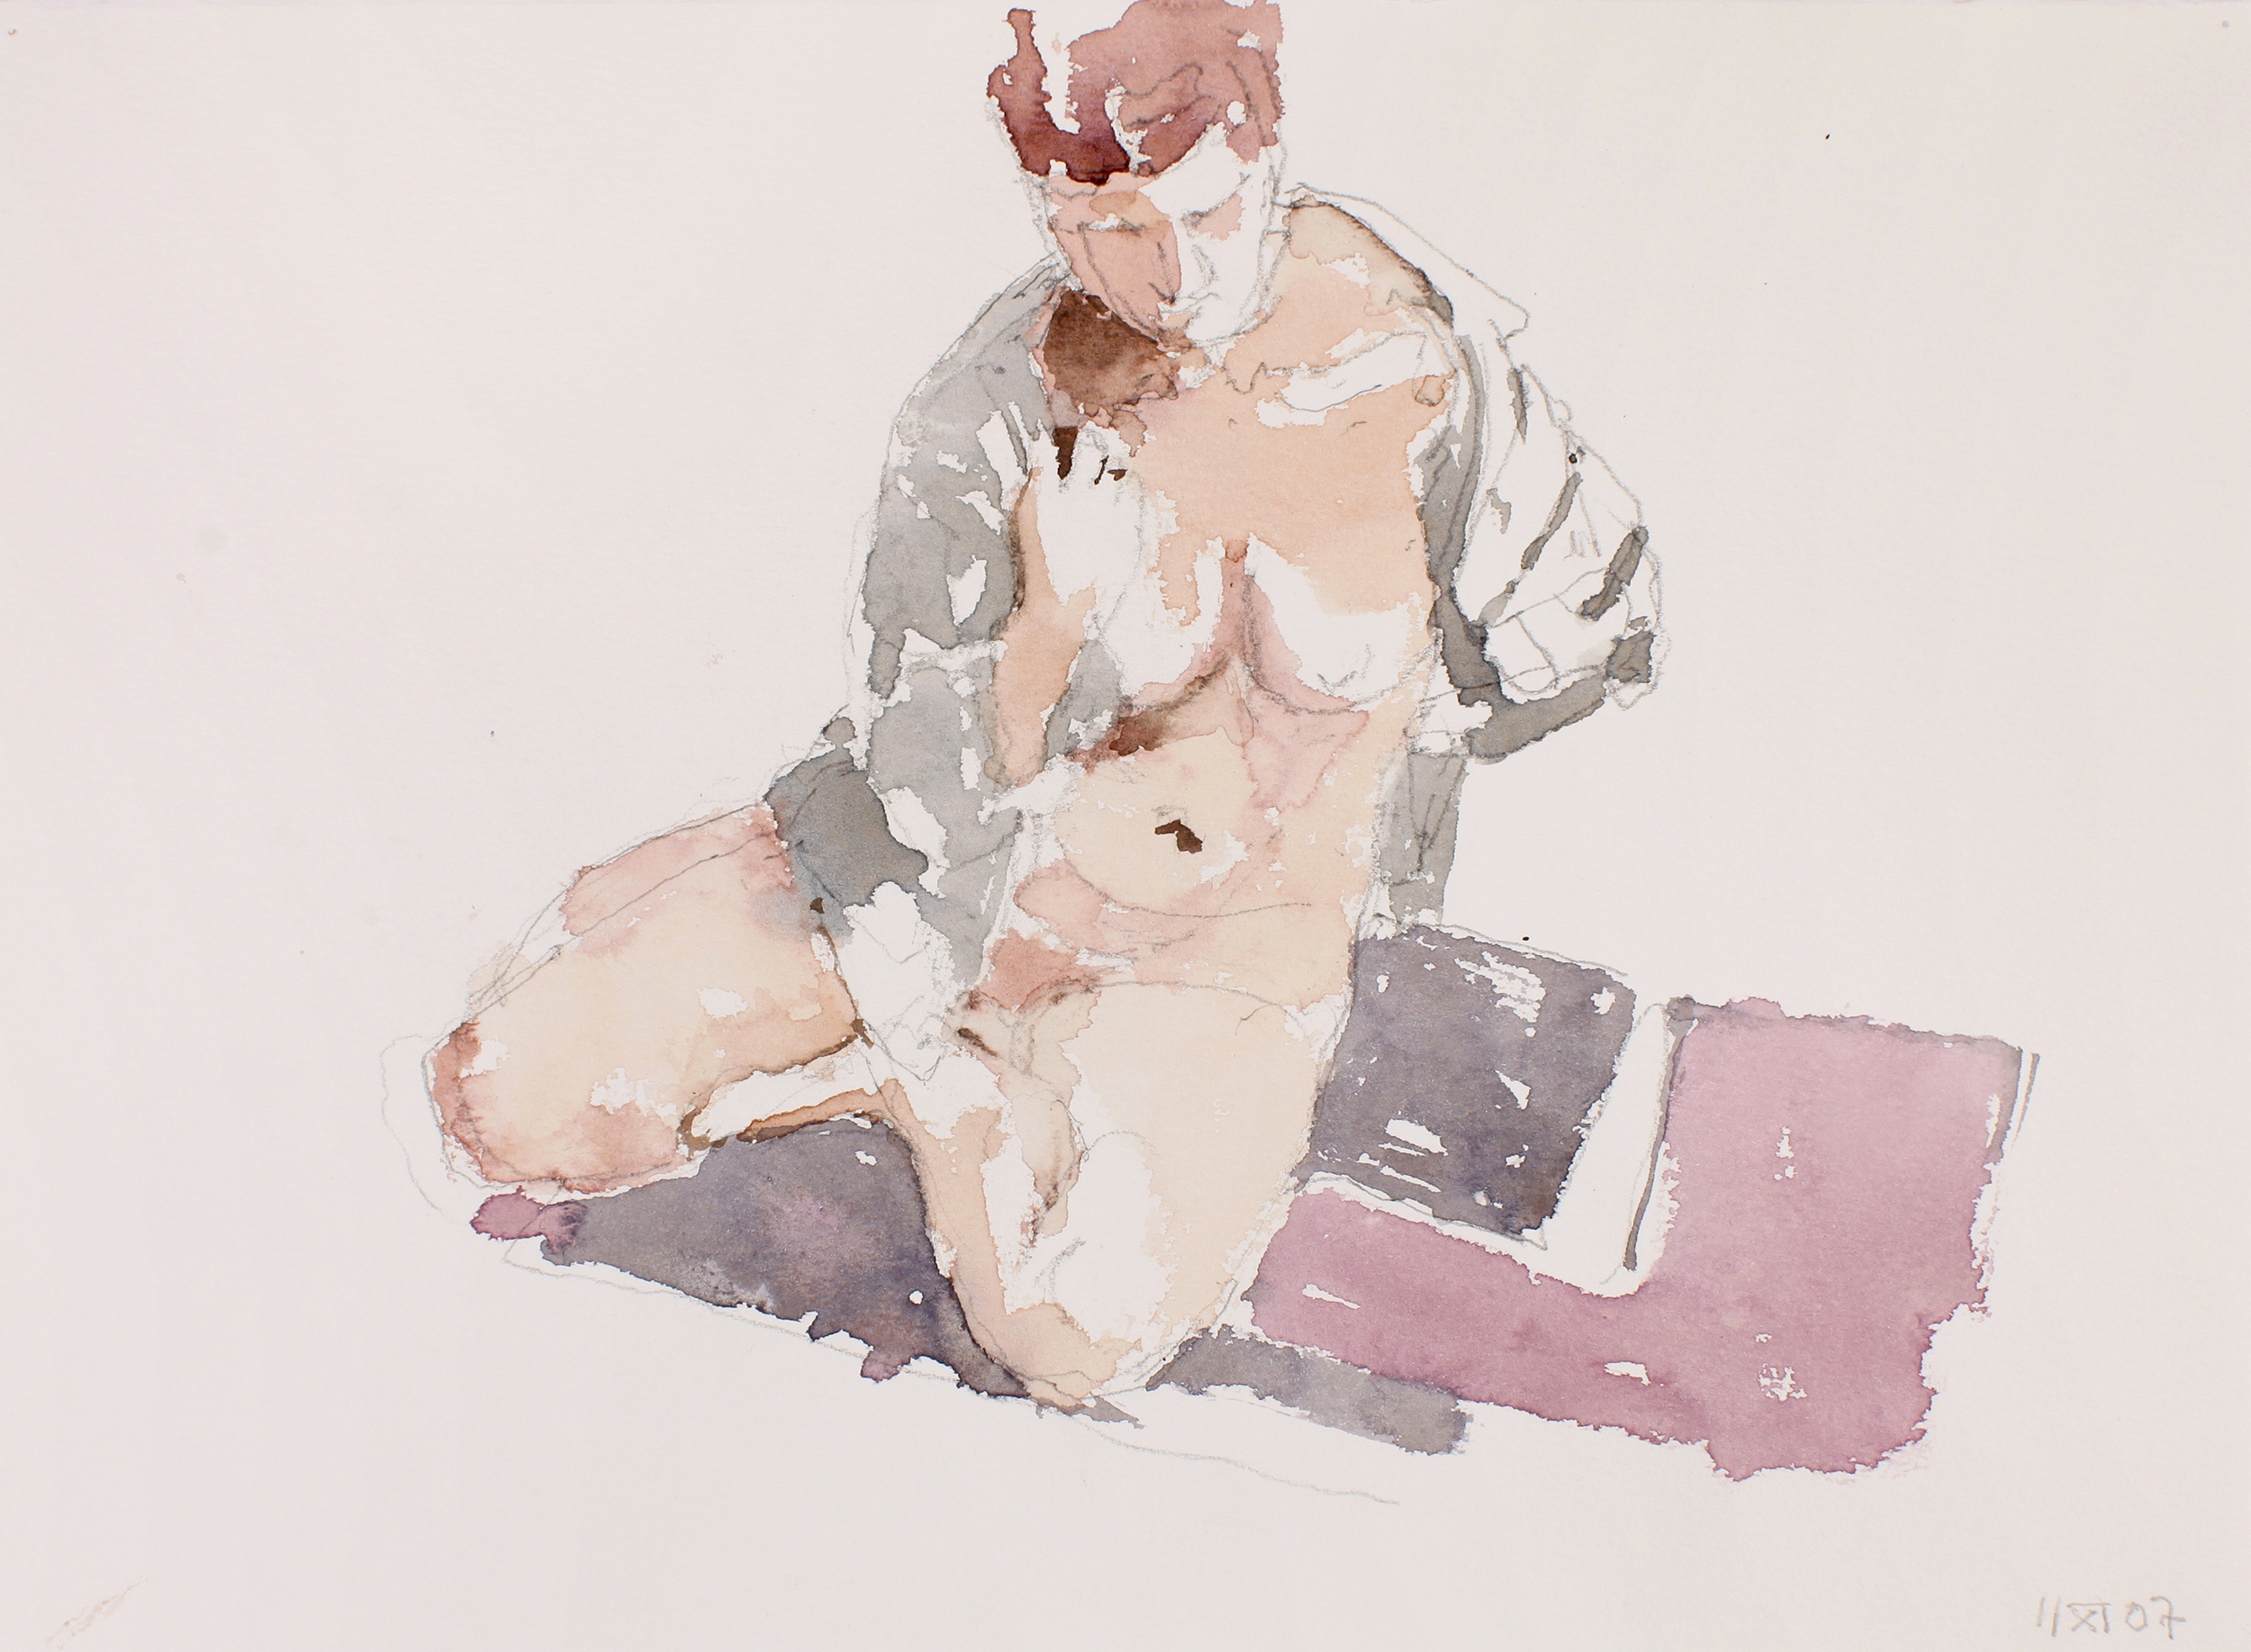 Nude Seated on with Open Blue Shirt